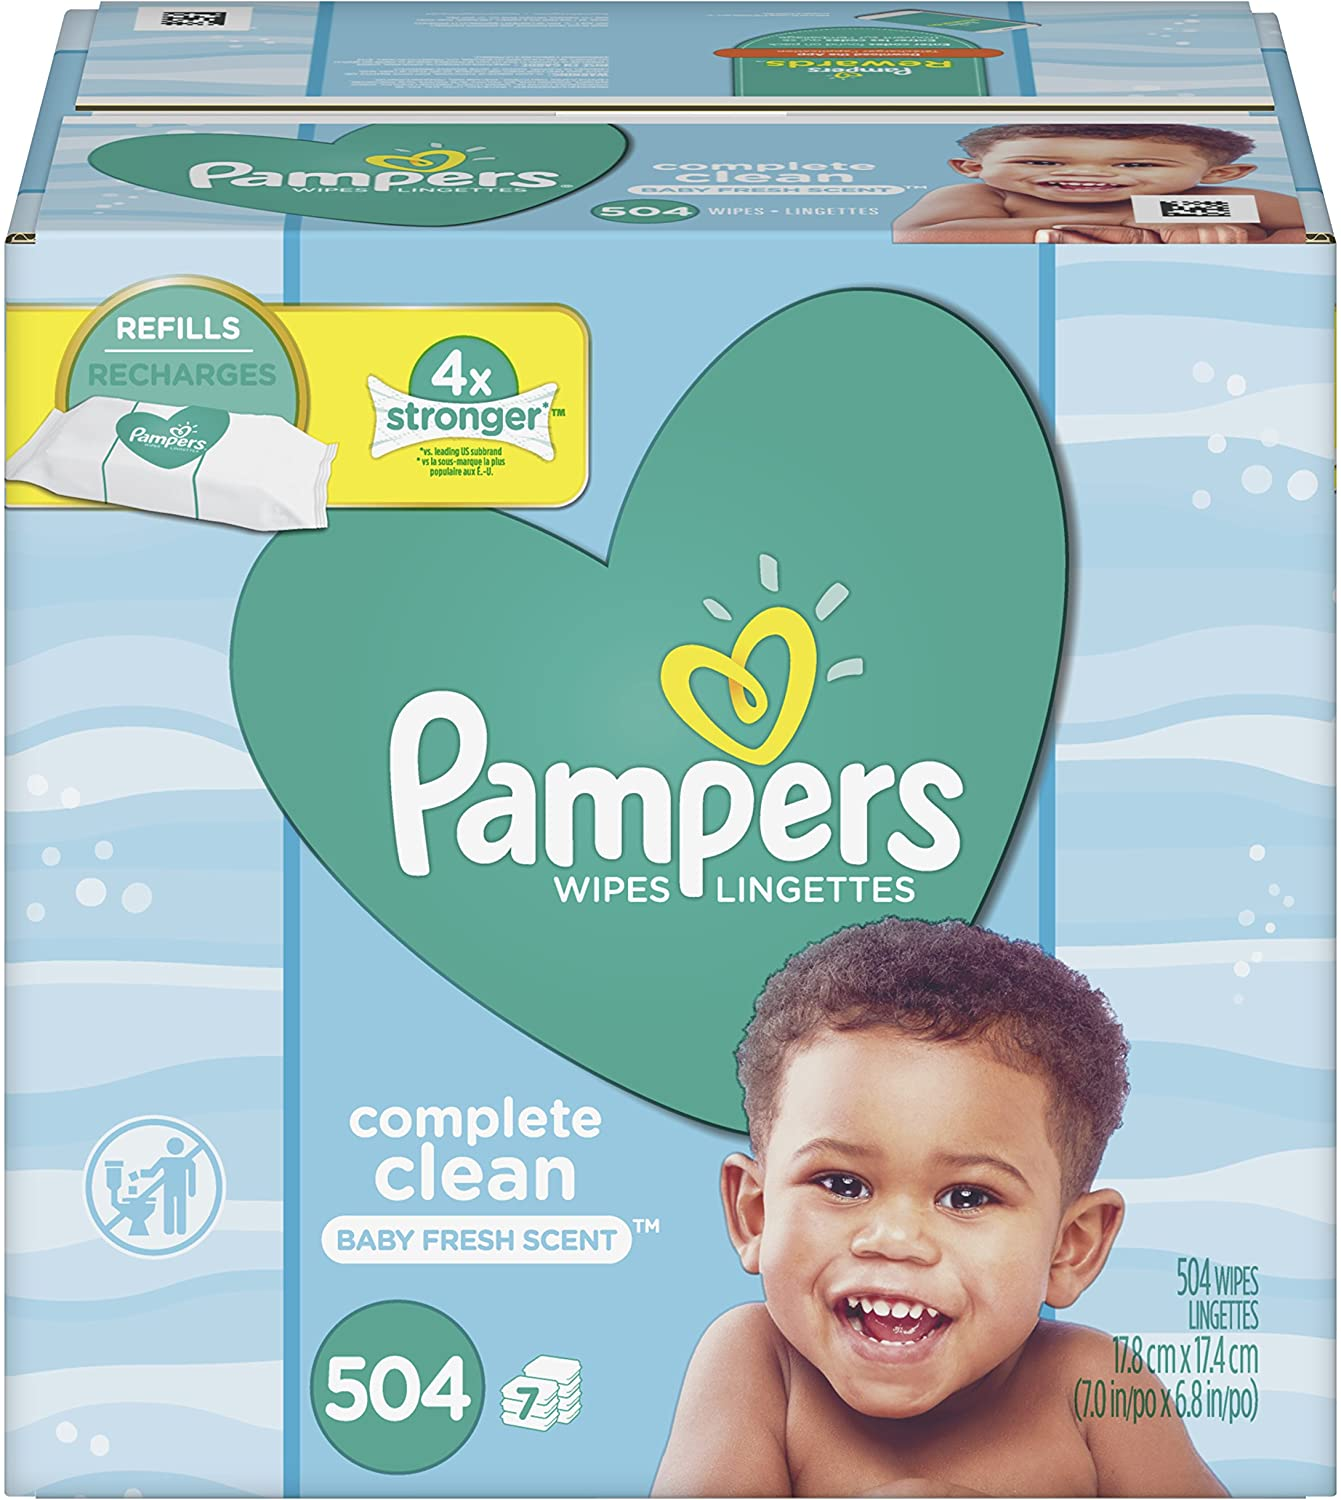 Baby Brand 1 year warranty new Wipes Pampers Diaper Clean 7 Complete Scented